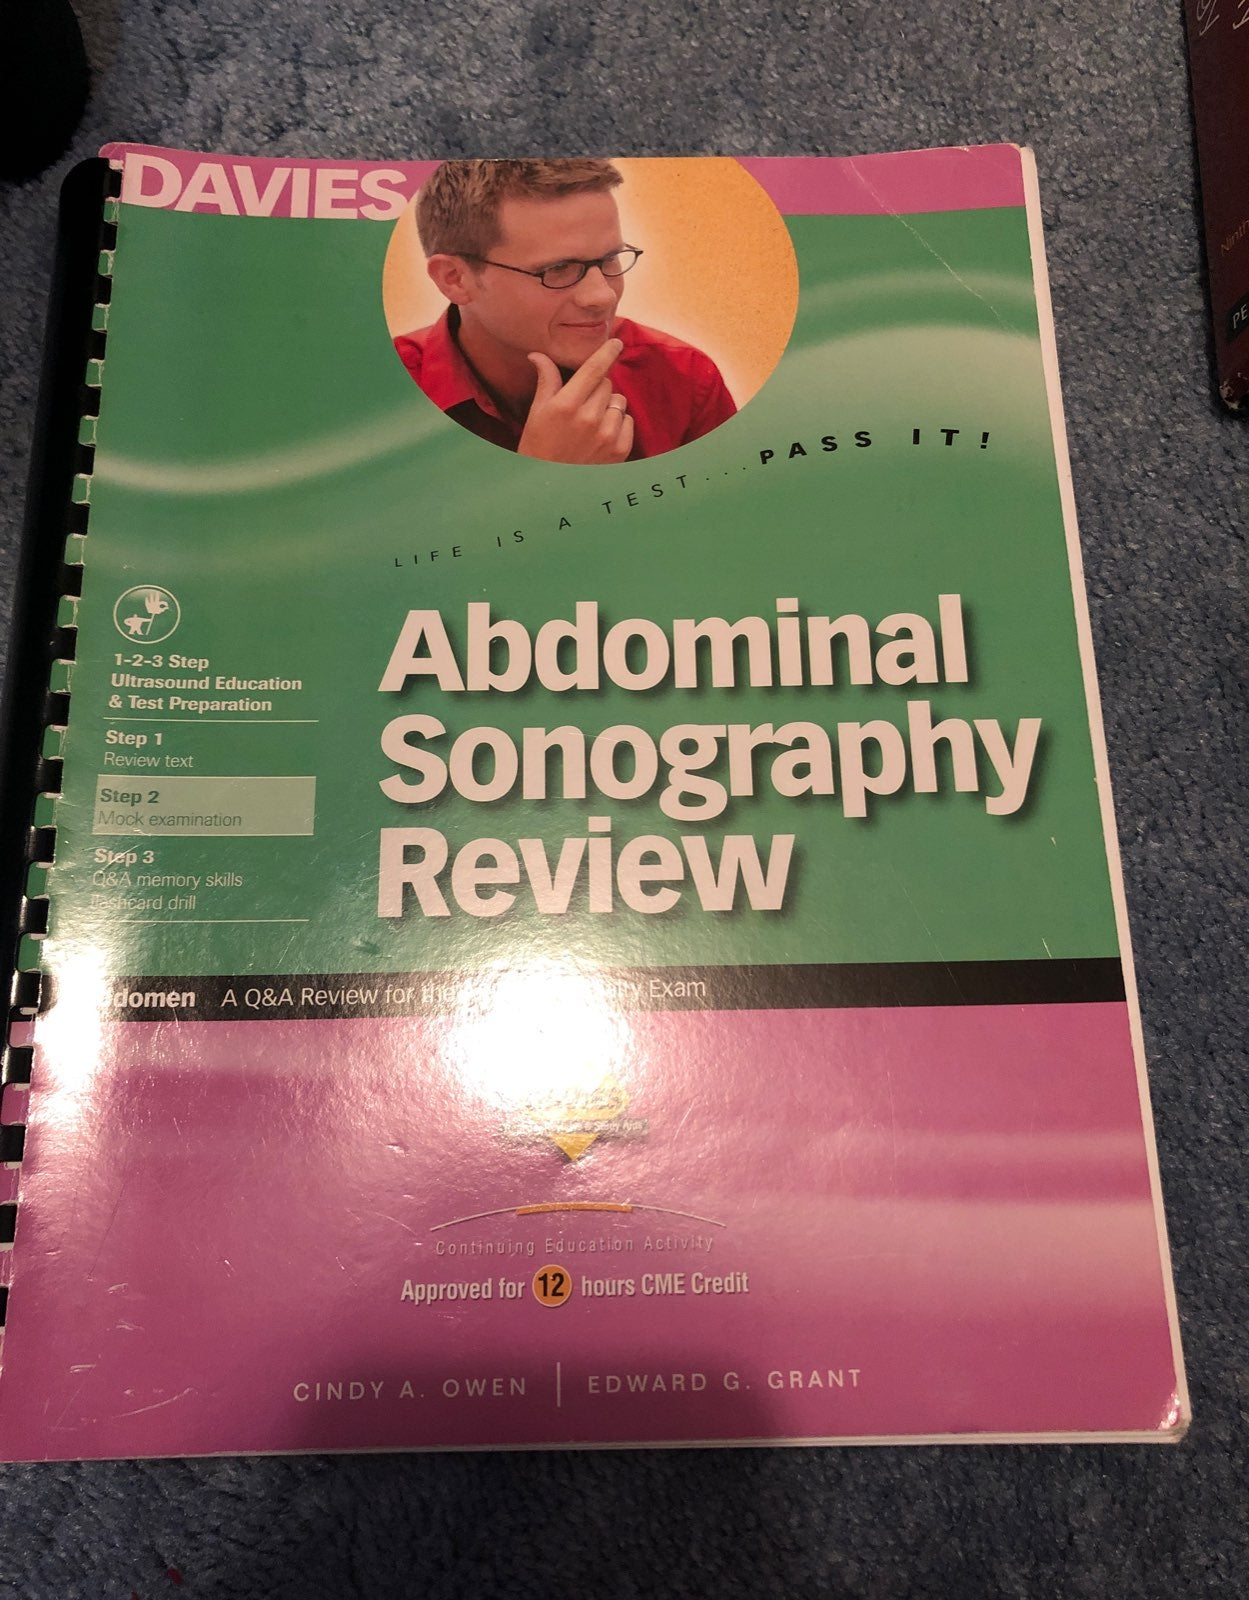 Davies abdominal sonography review book